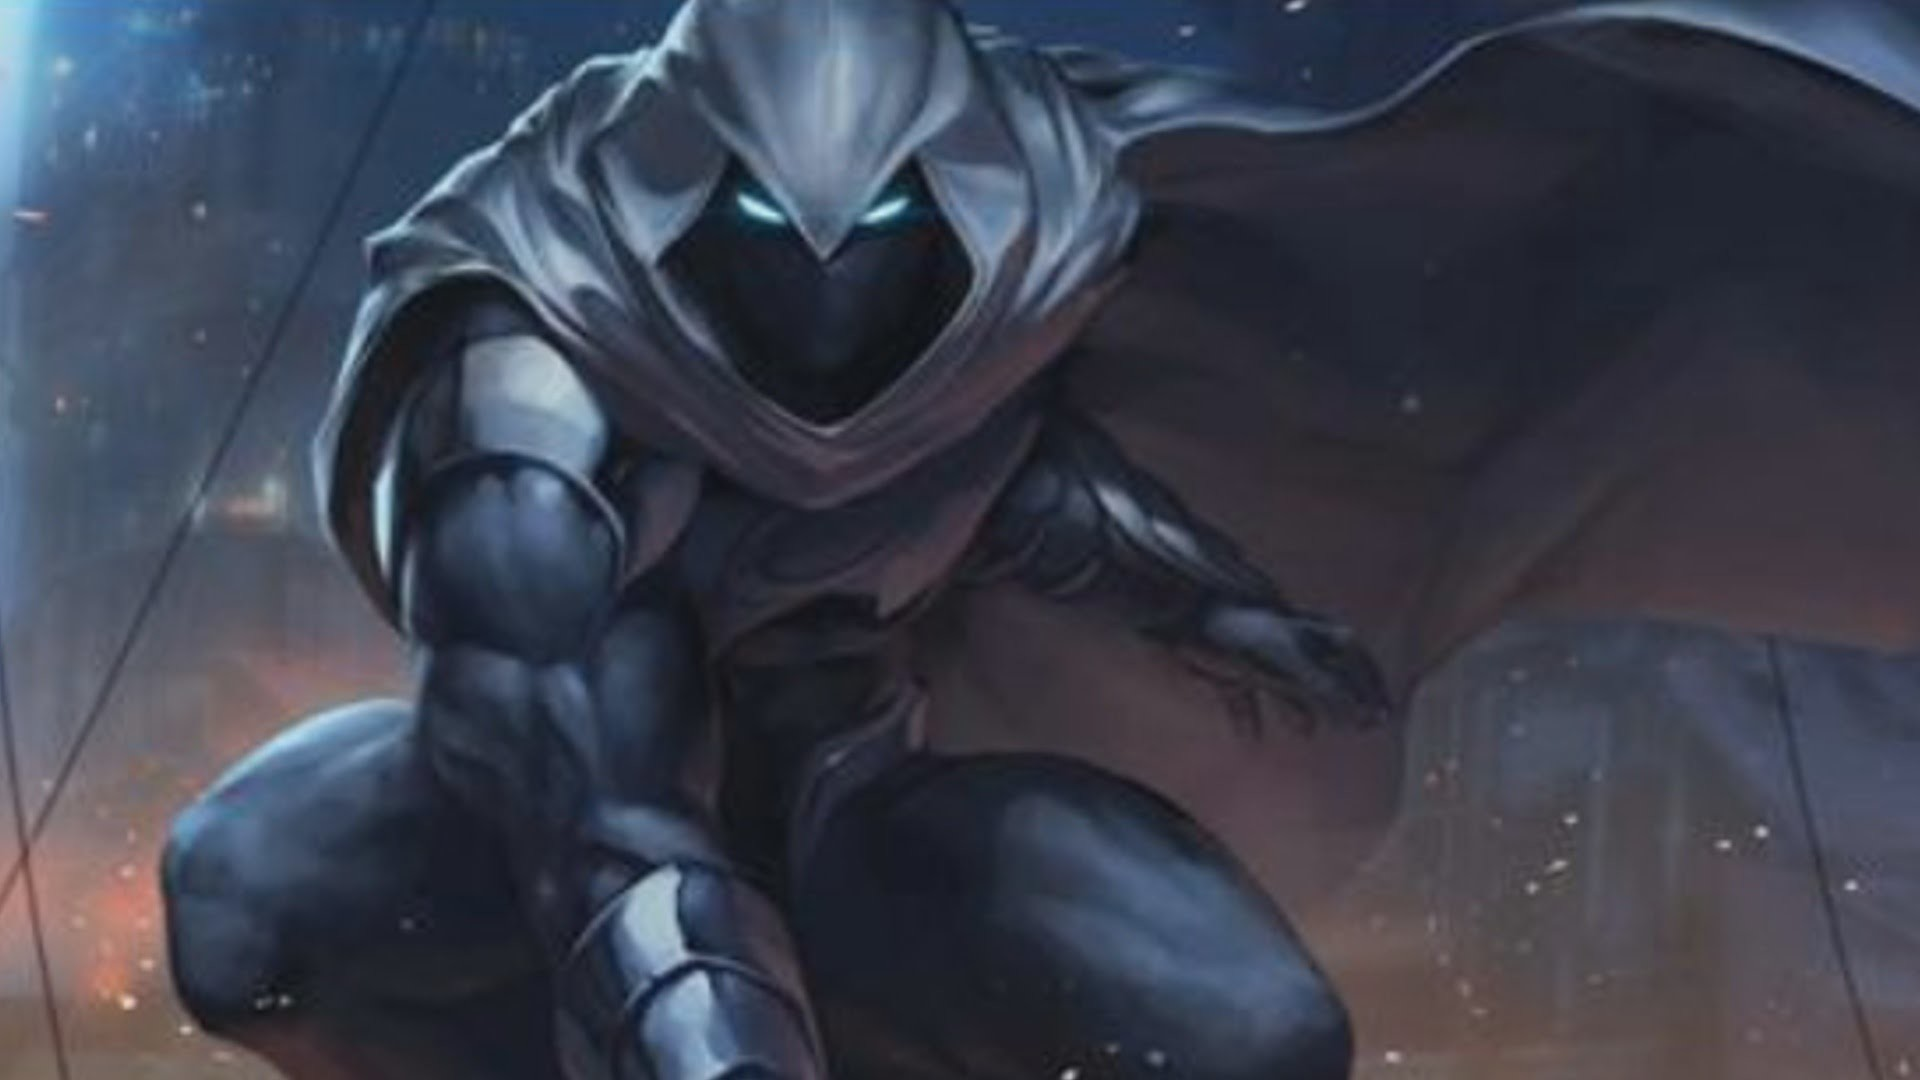 Moon Knight Hd Wallpaper 75 Images